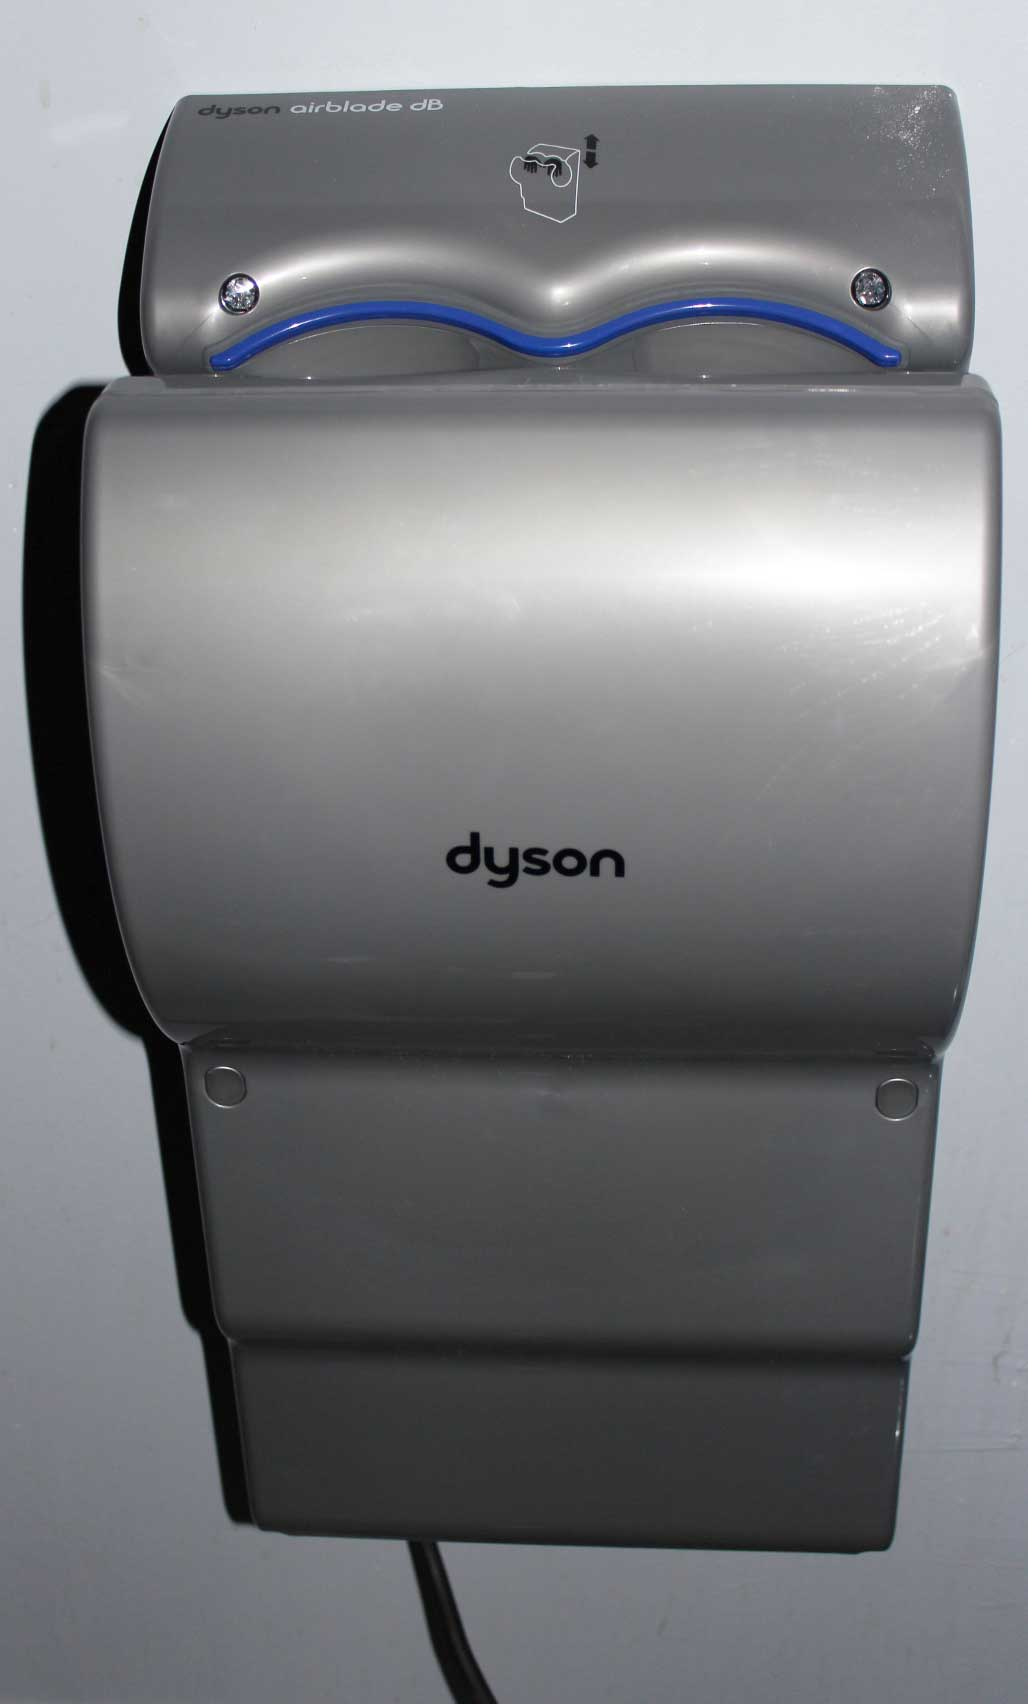 your dyson airblade has been equipped with a 110v power cord and is - Dyson Hand Dryer